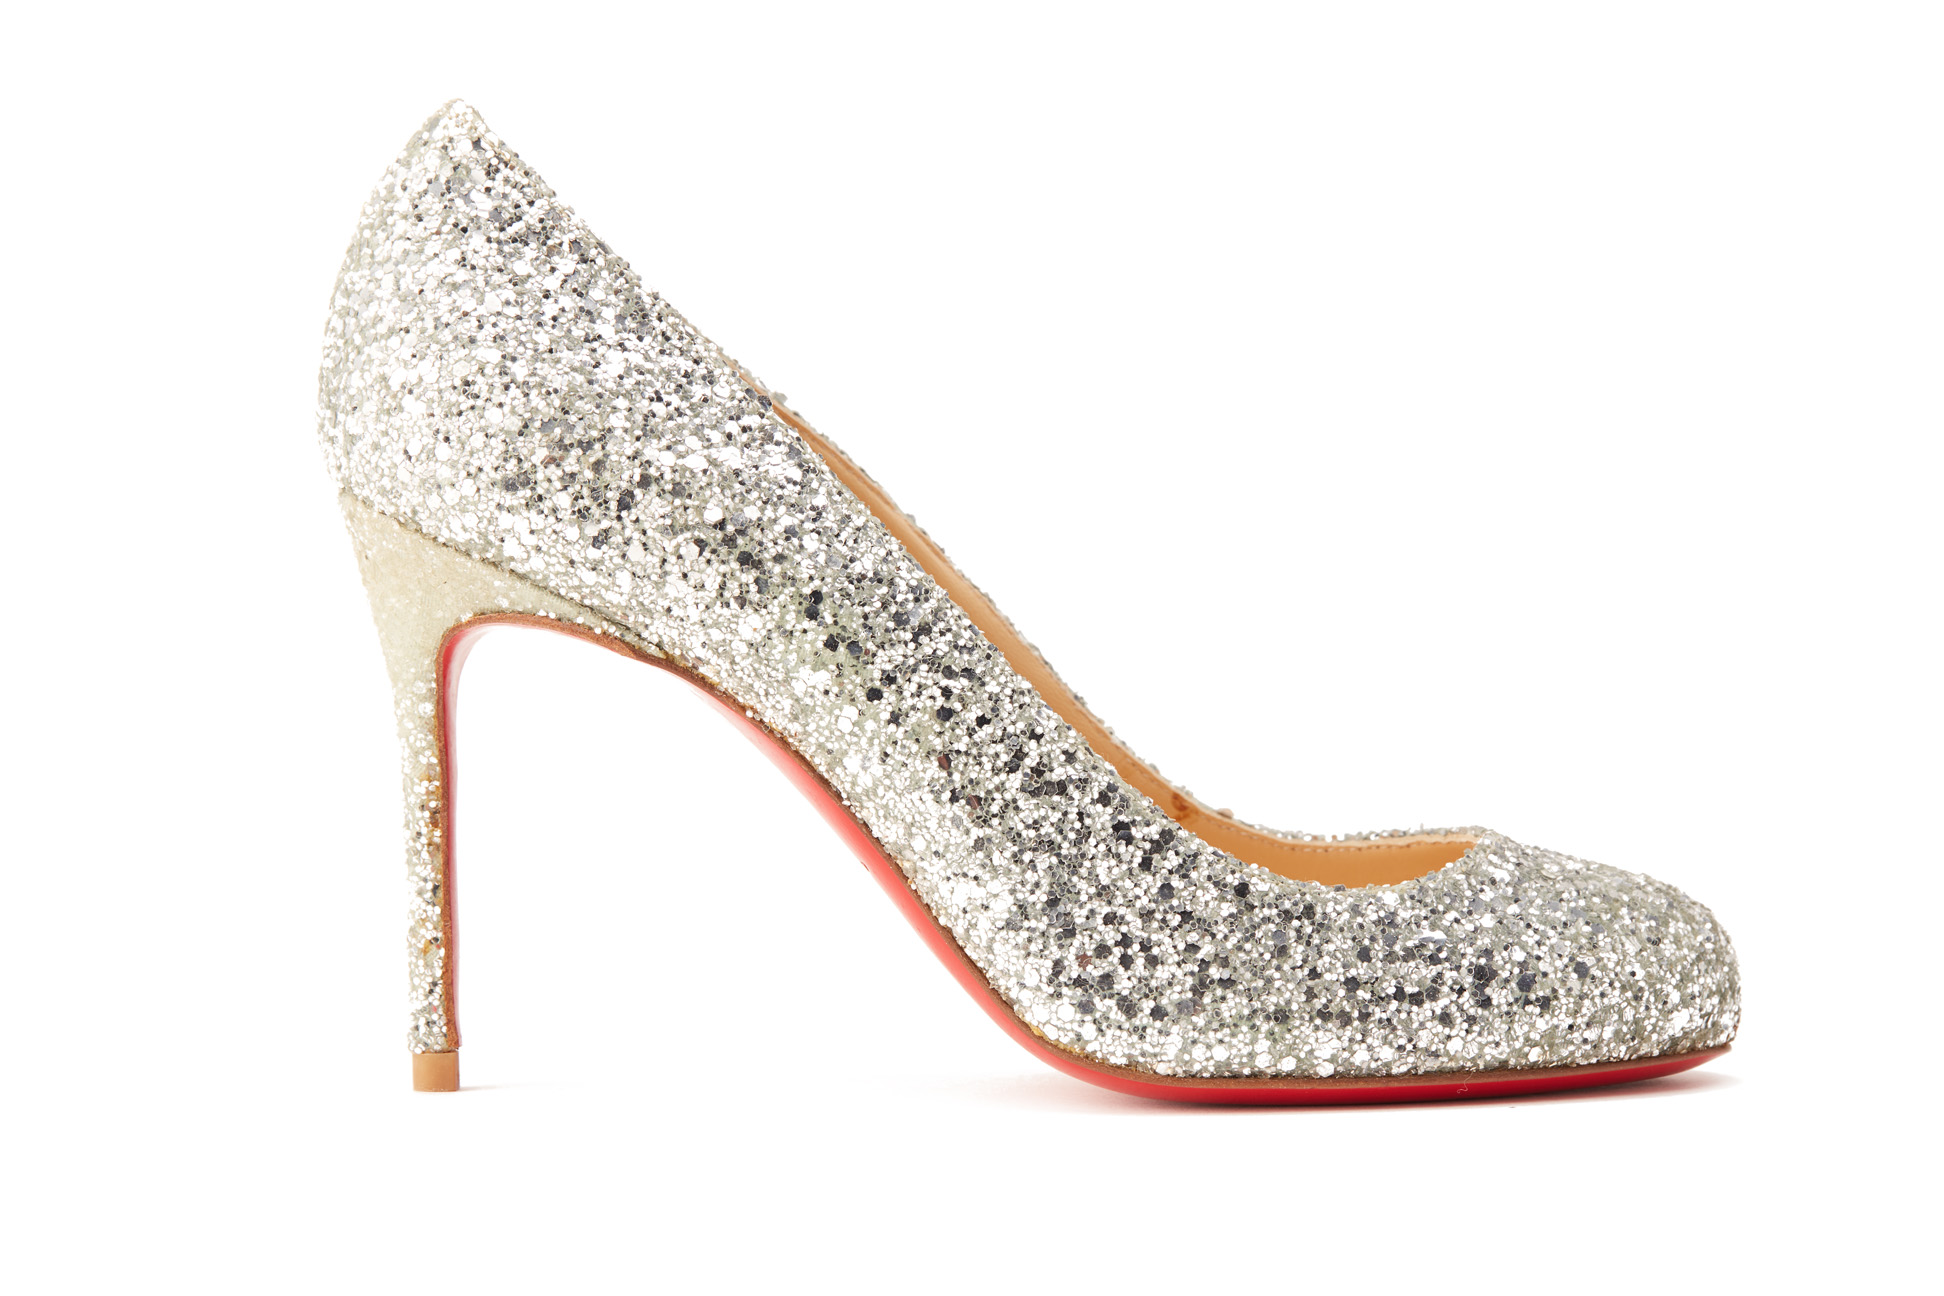 A PAIR OF CHRISTIAN LOUBOUTIN SILVER SPARKLY HEELS EU 35.5 - Image 2 of 4